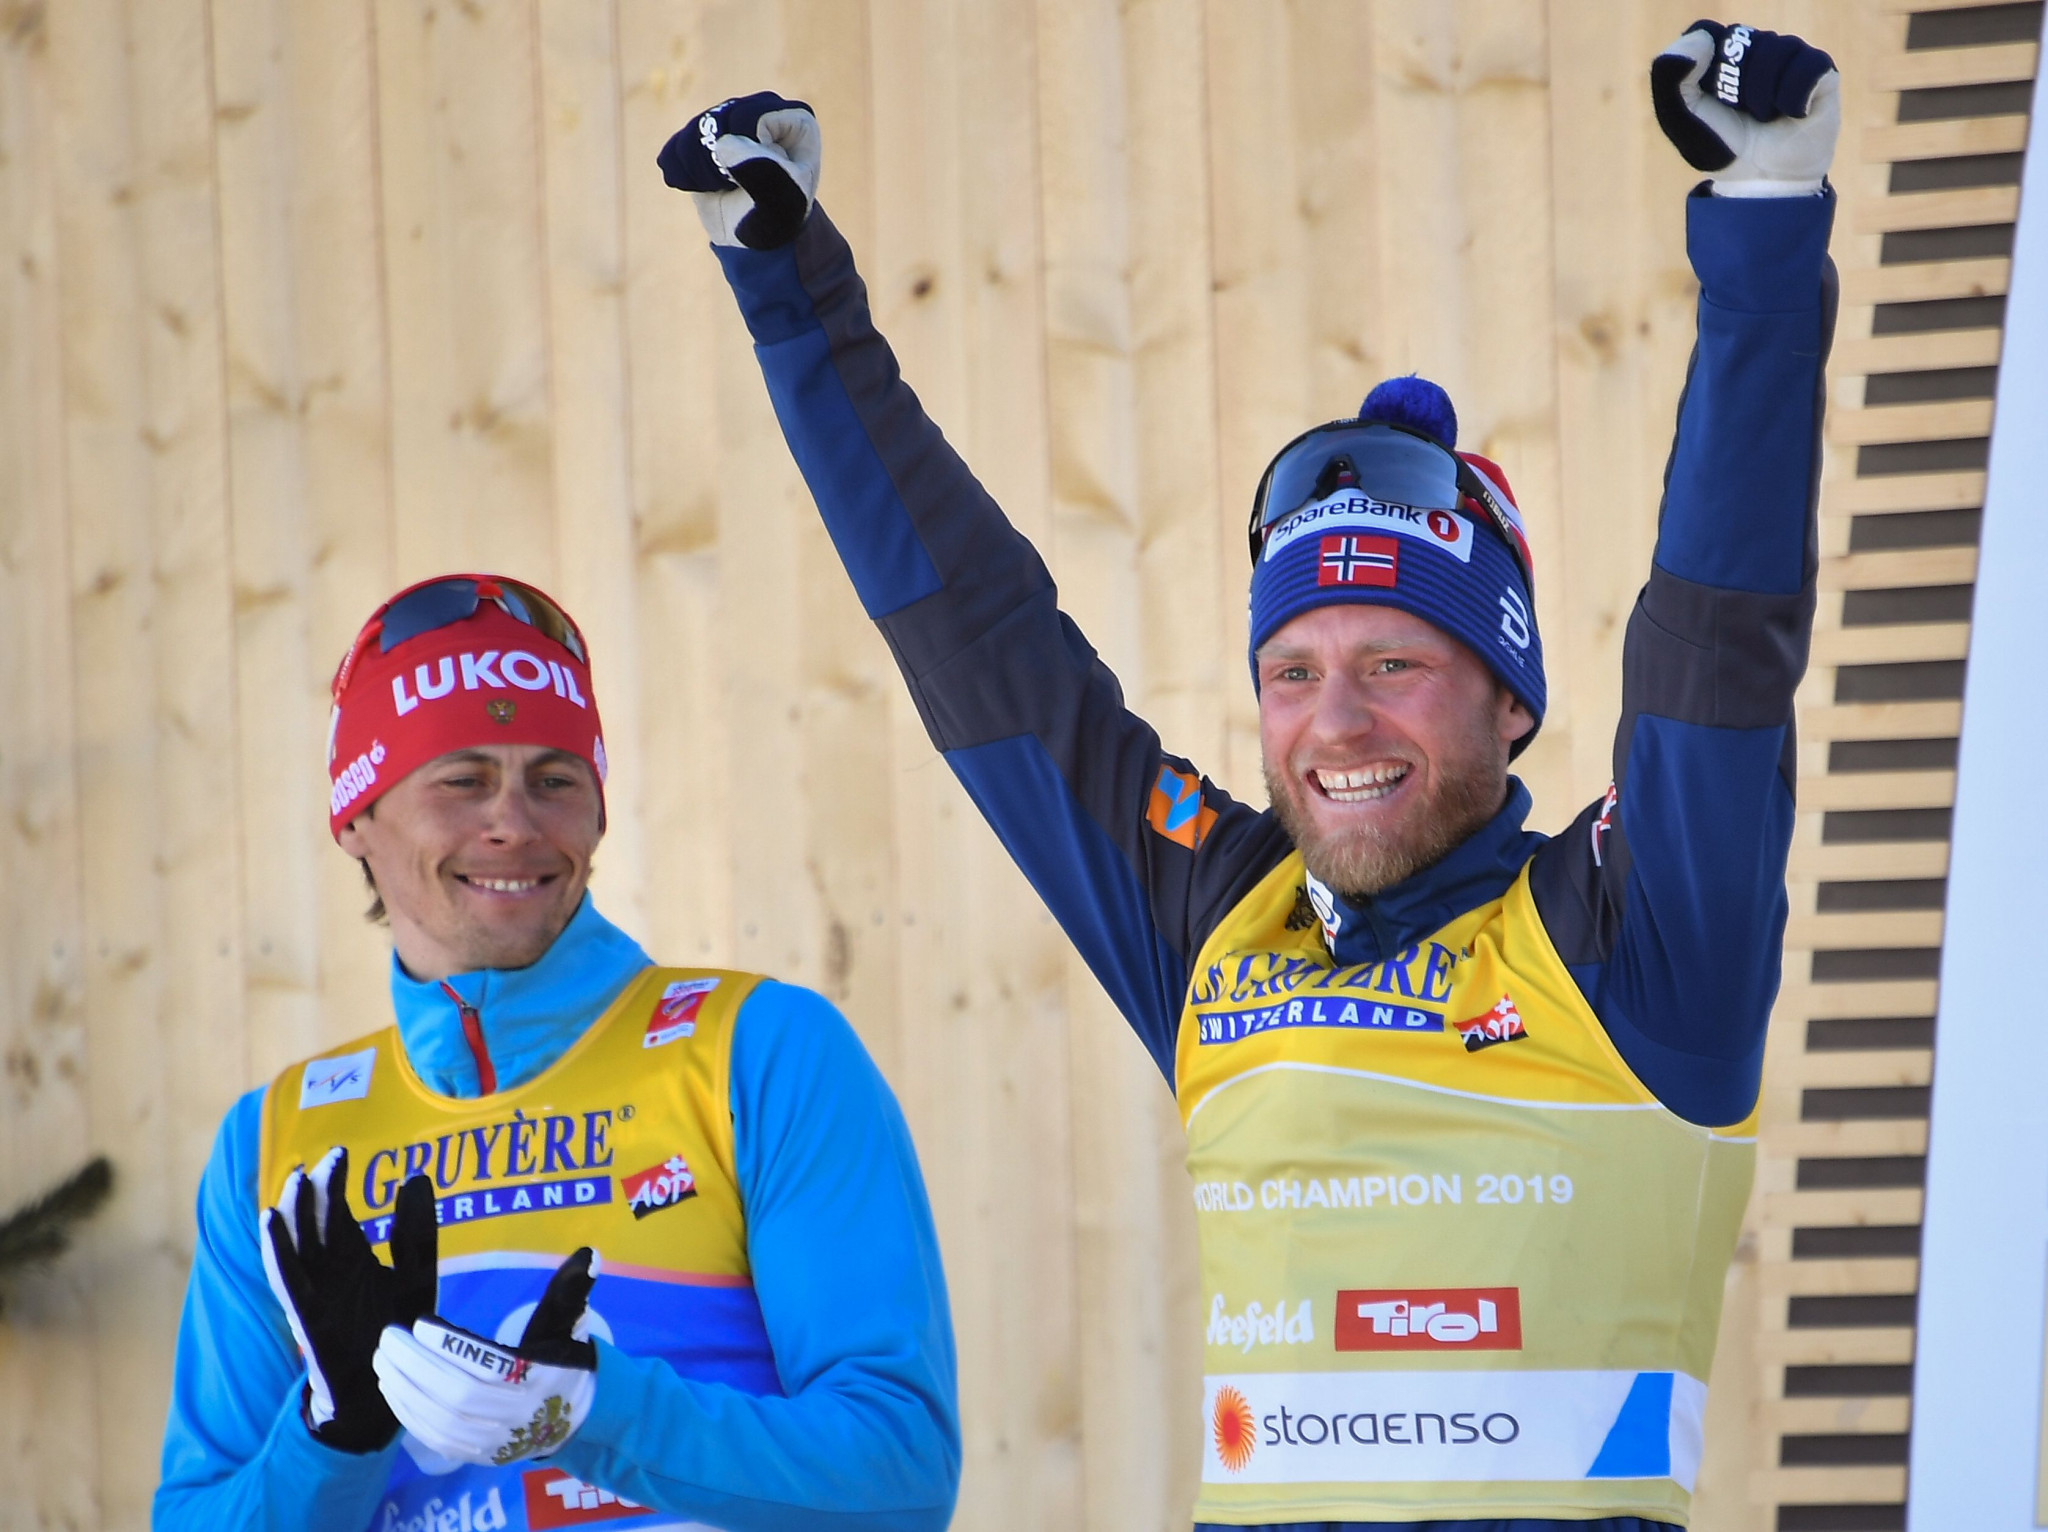 Sundby wins men's 15km cross-country gold as police raid overshadows World Nordic Skiing Championships